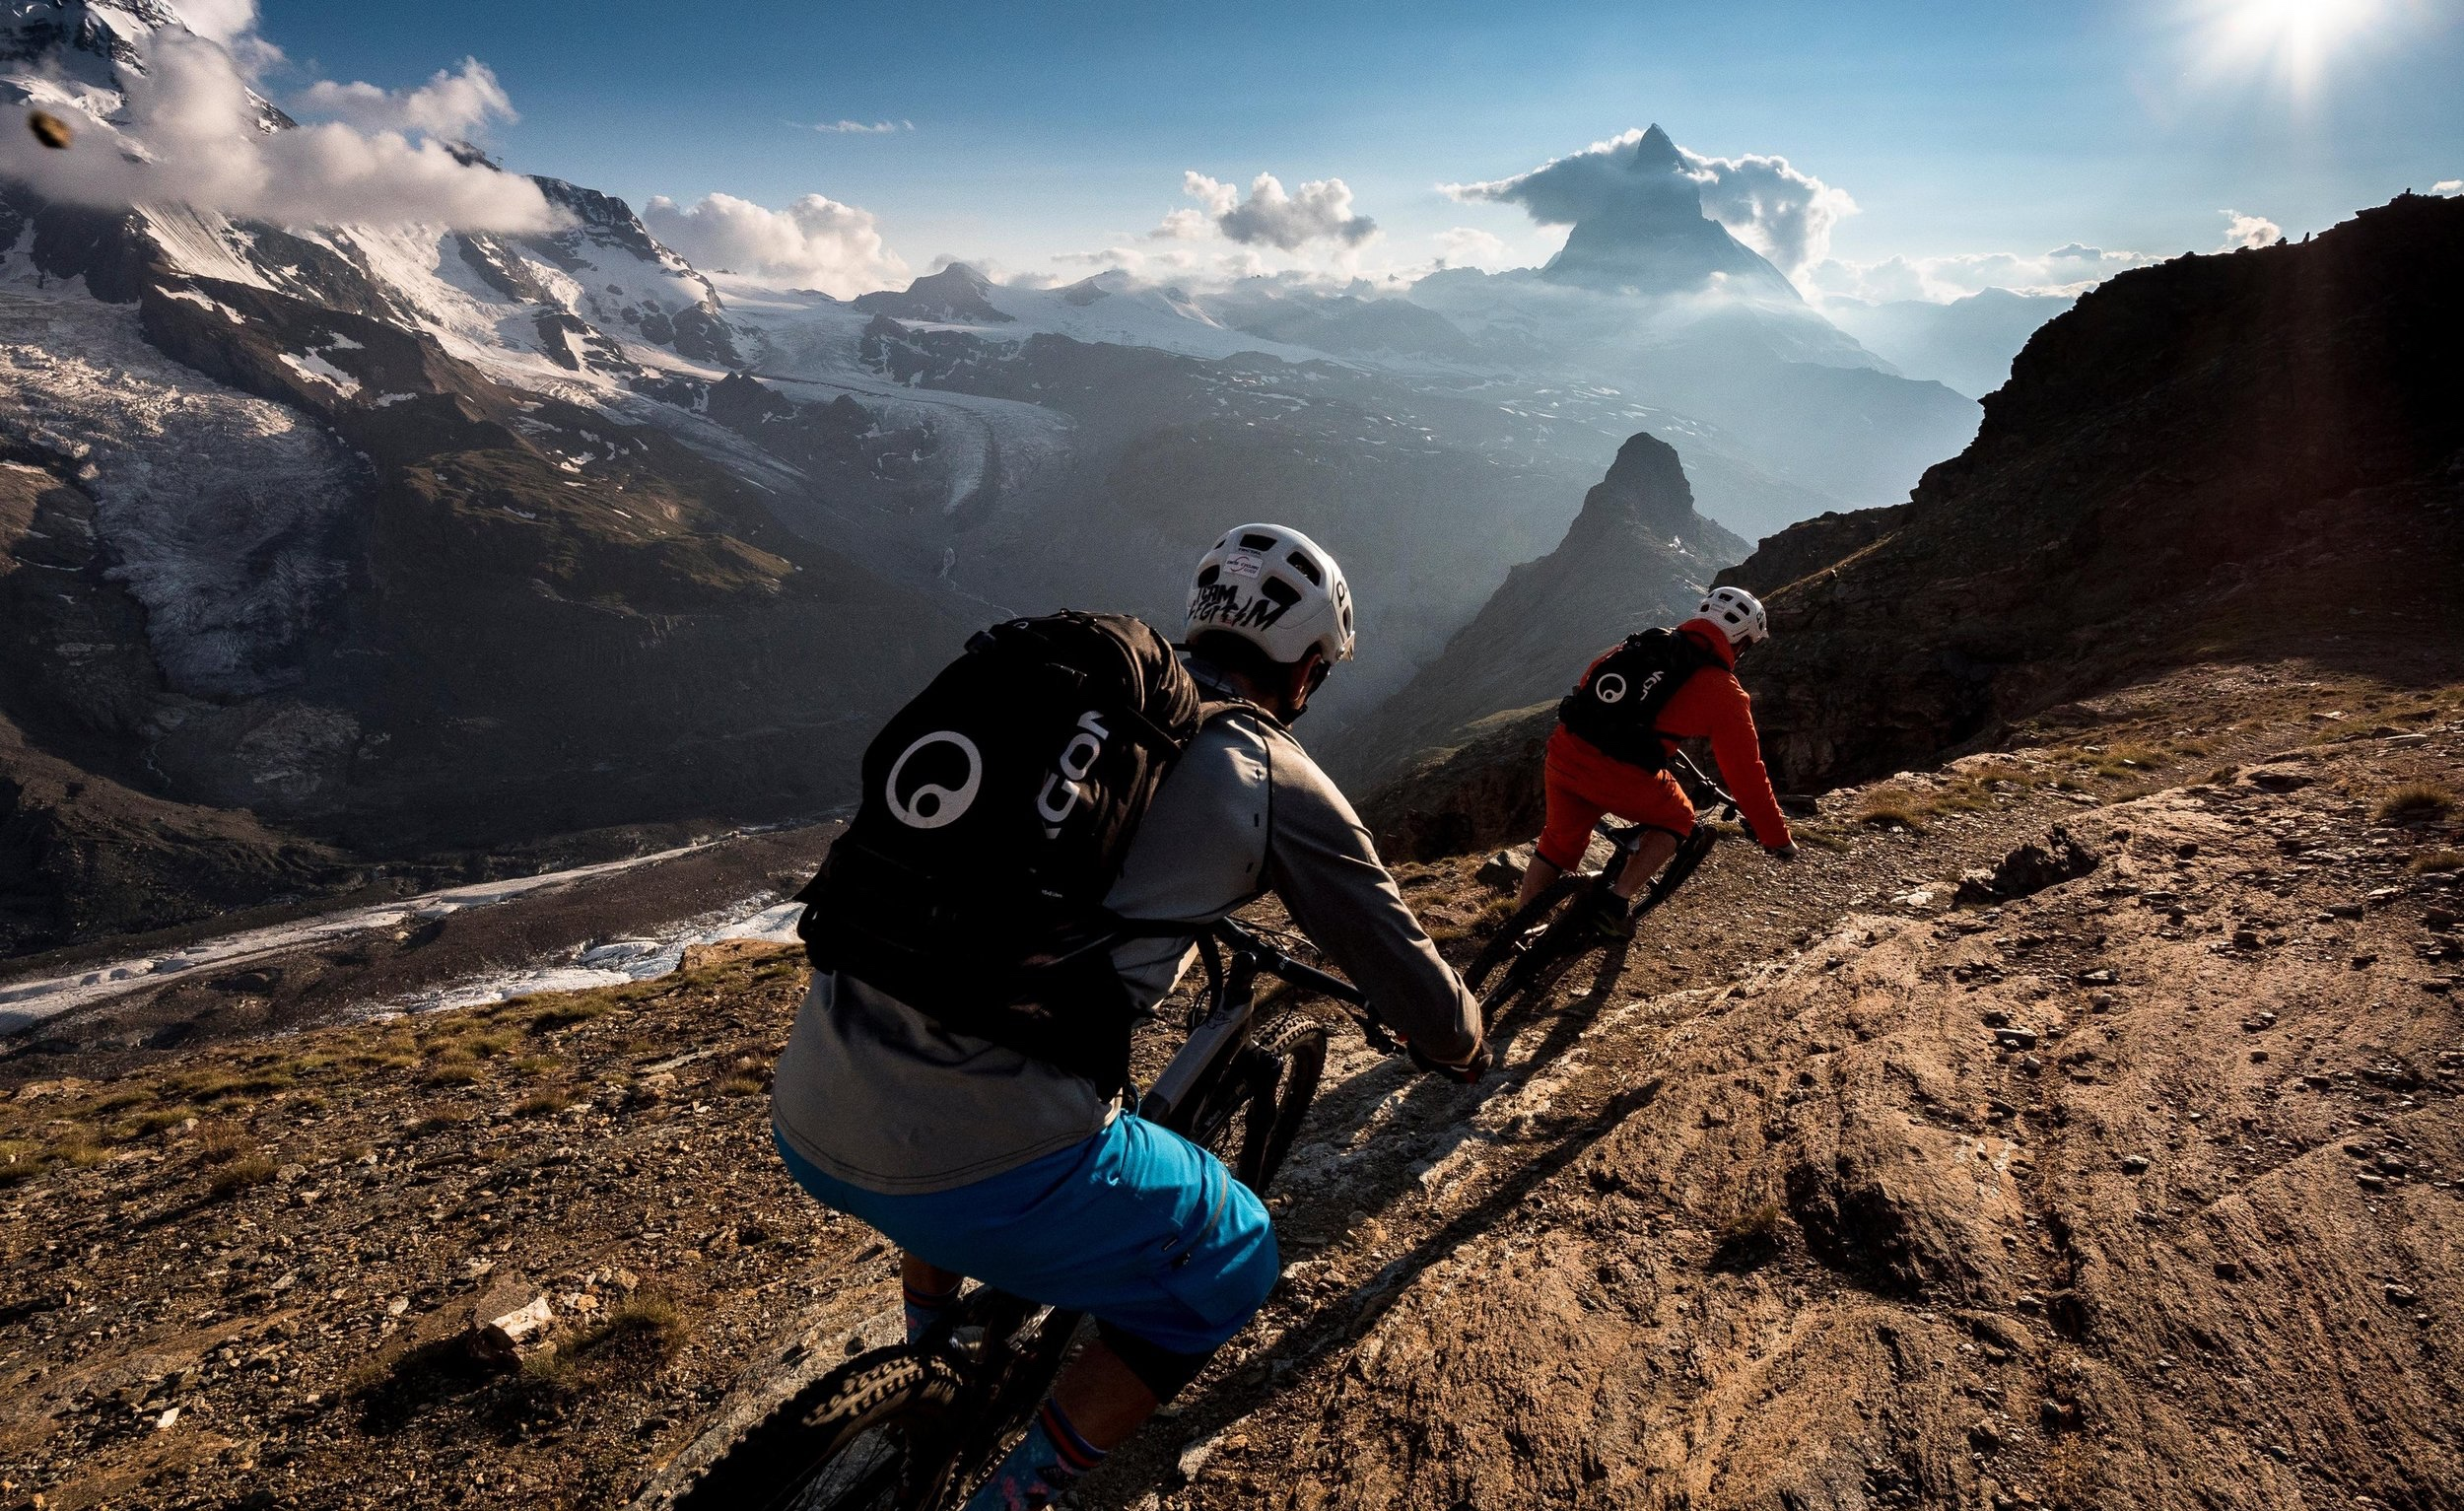 Gornergrat_Zermatt_Bike_School.jpg